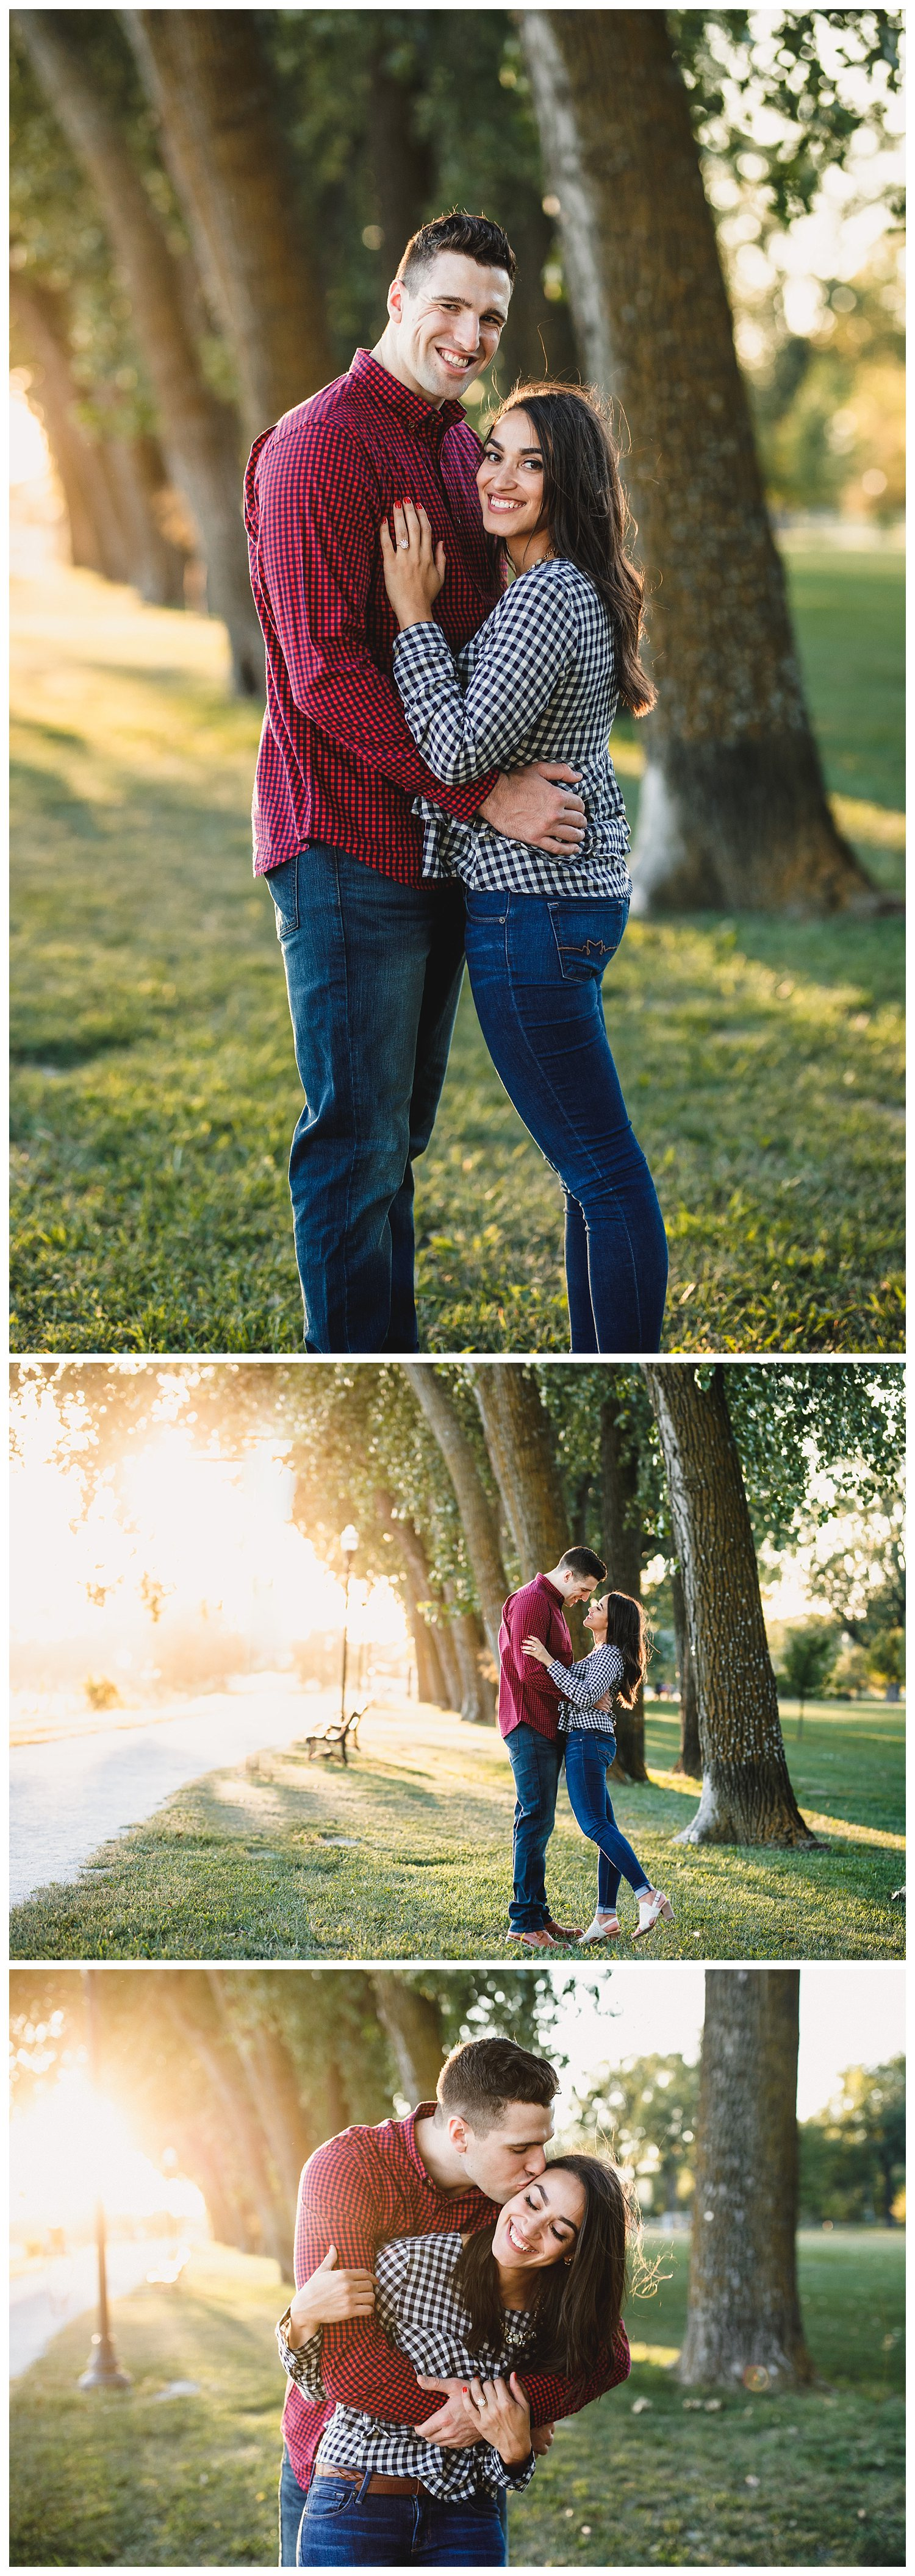 Kansas_City_Wedding_Photographer_Engagement_Kelsey_Diane_Photography_Midwest_Traveling_In_home_engagement_Session_Cassie_Austin_Parkville_Missouri_0896.jpg